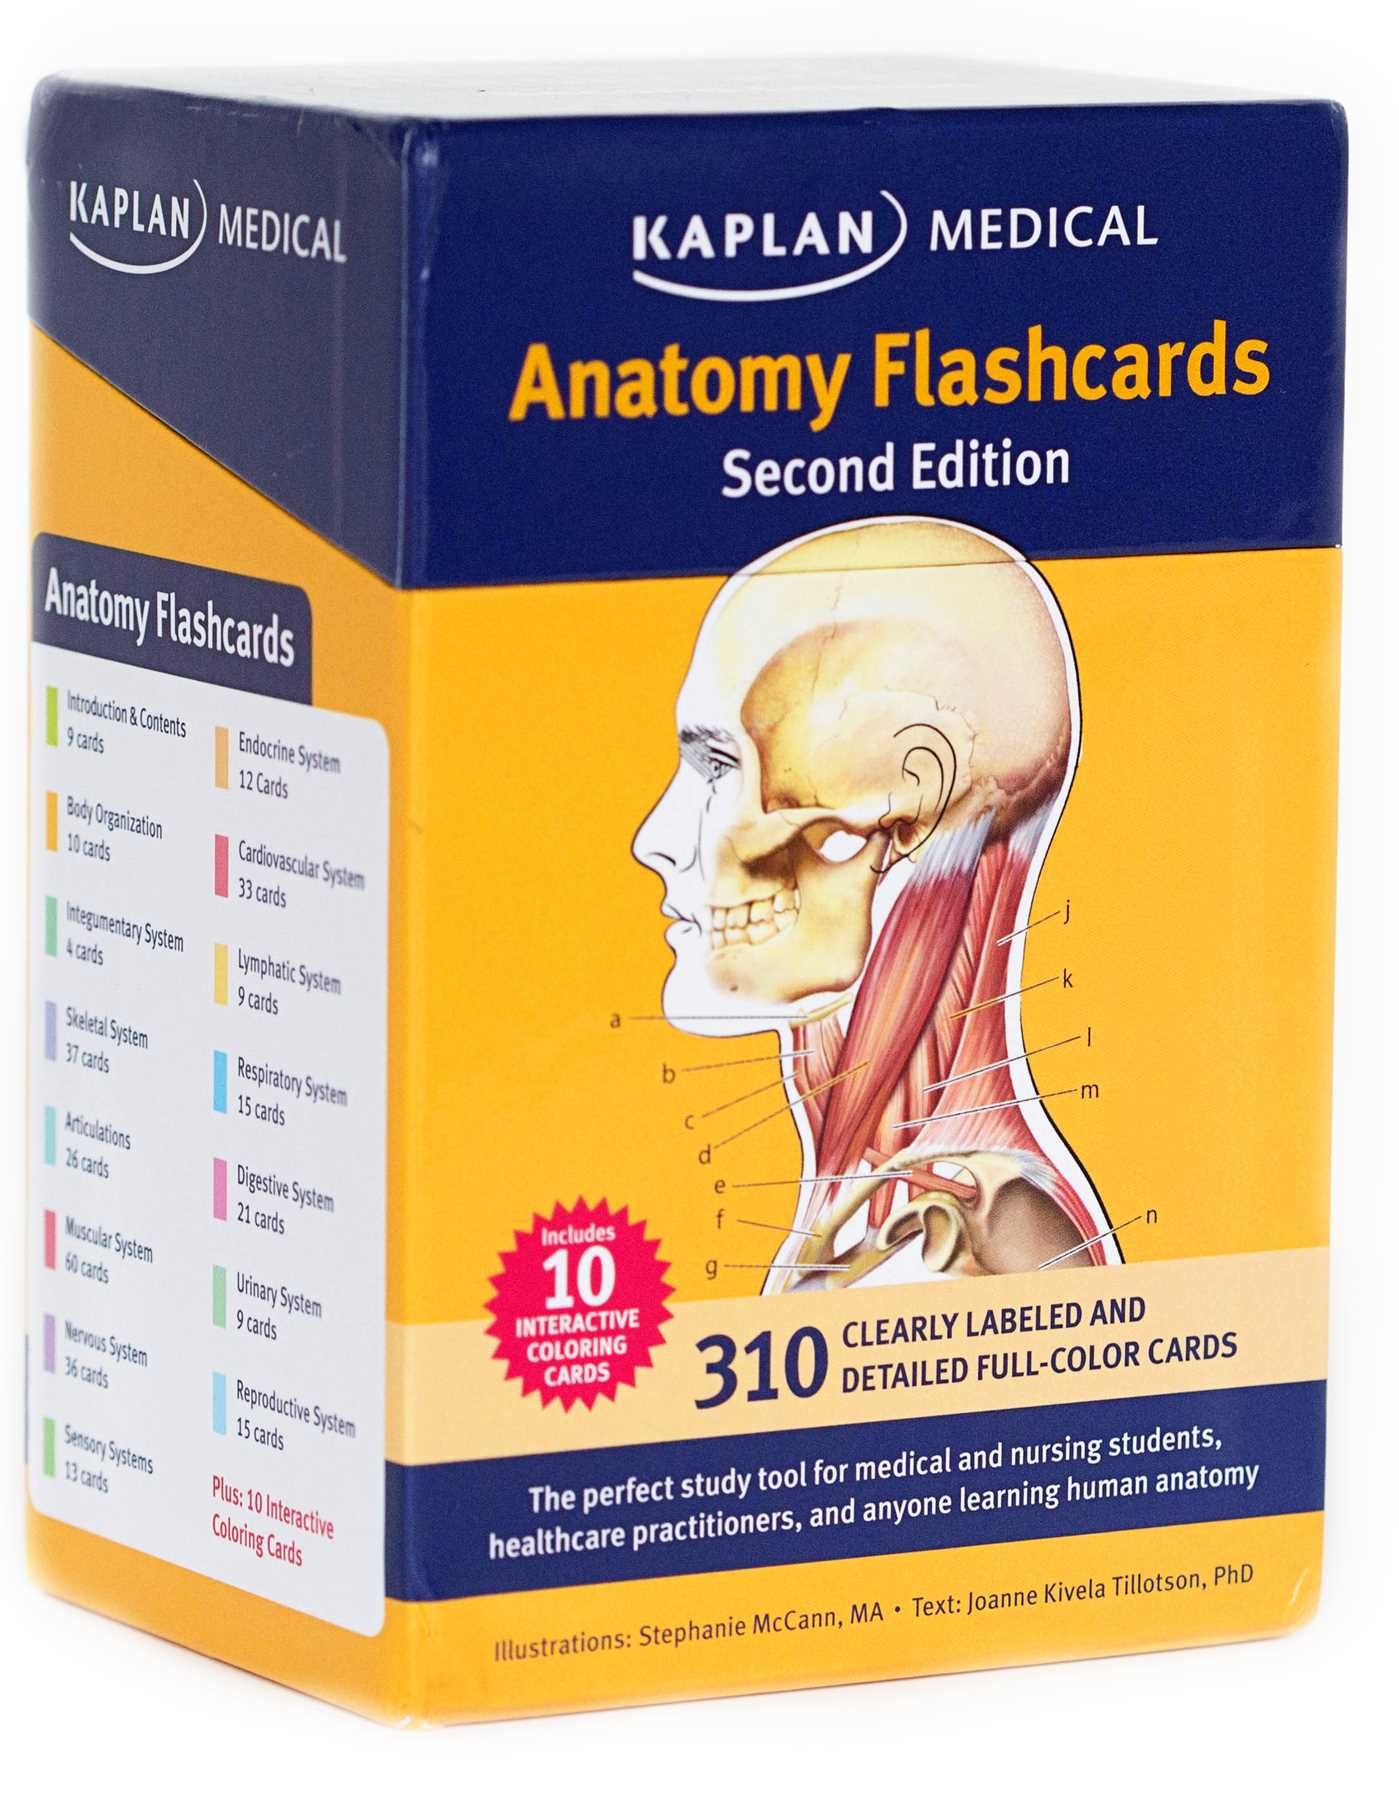 Anatomy-flashcards-9781607149842_hr